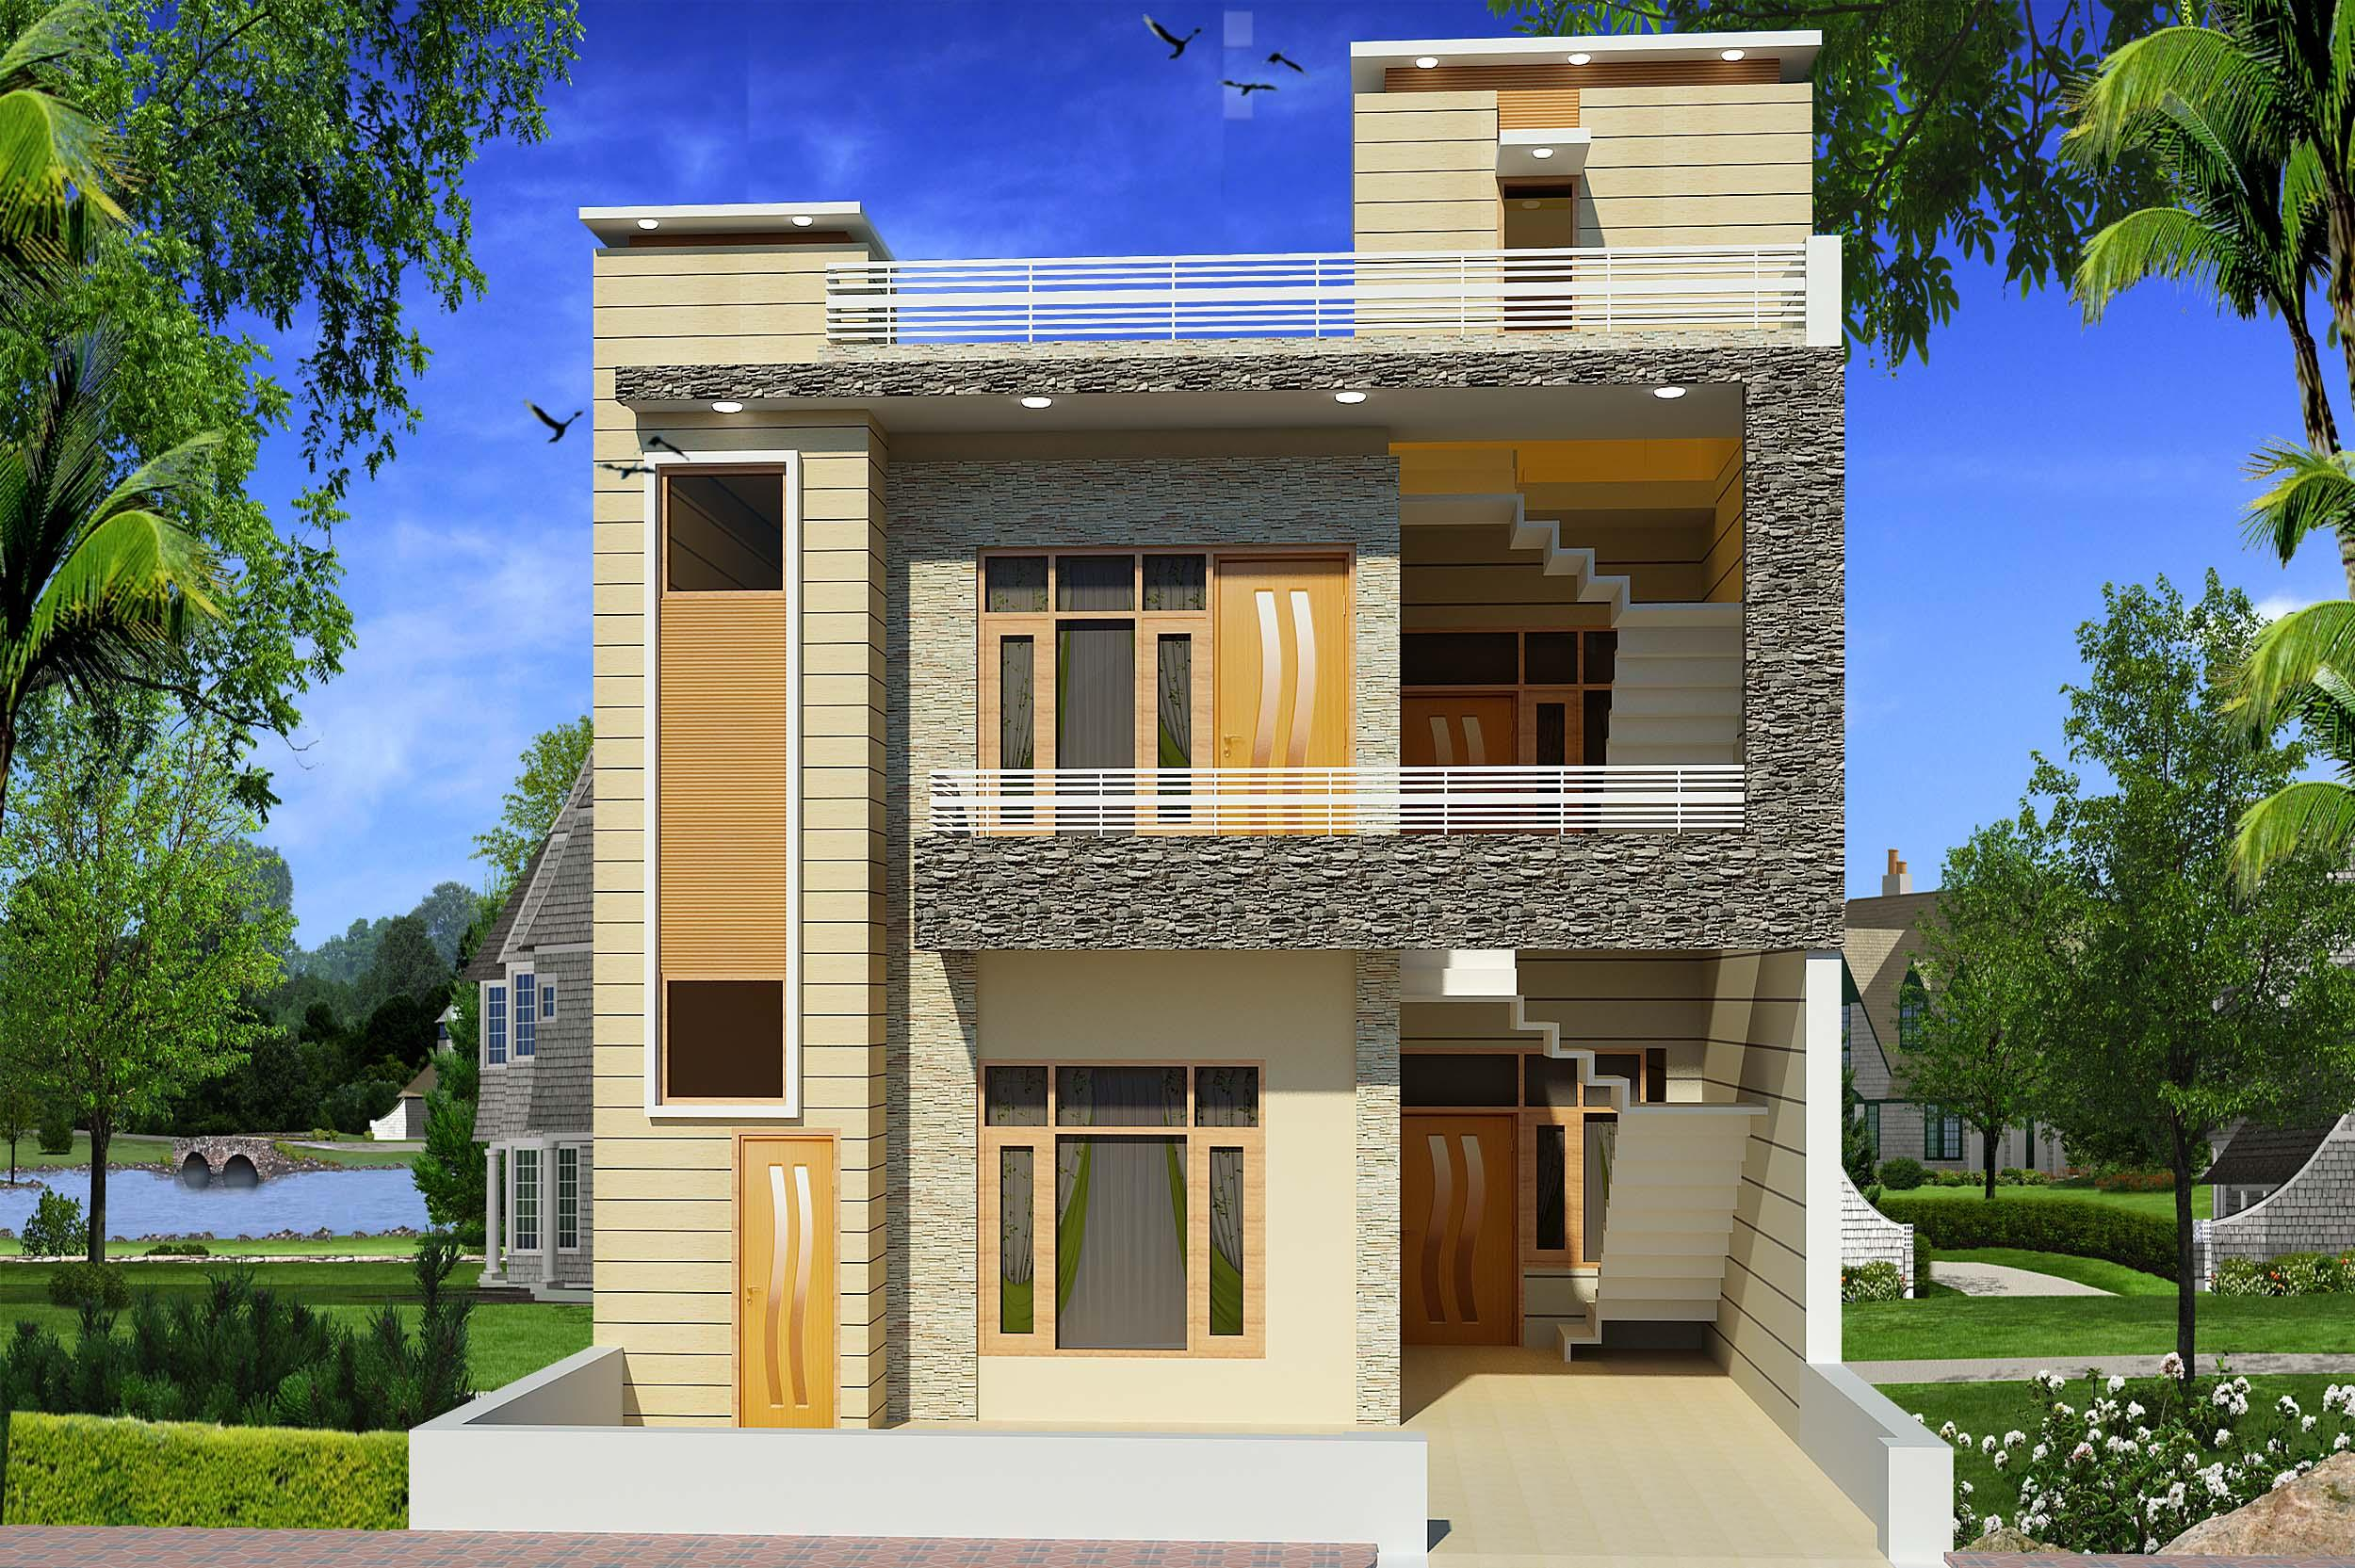 Modern house elevation gharexpert for Elevation ideas for new homes